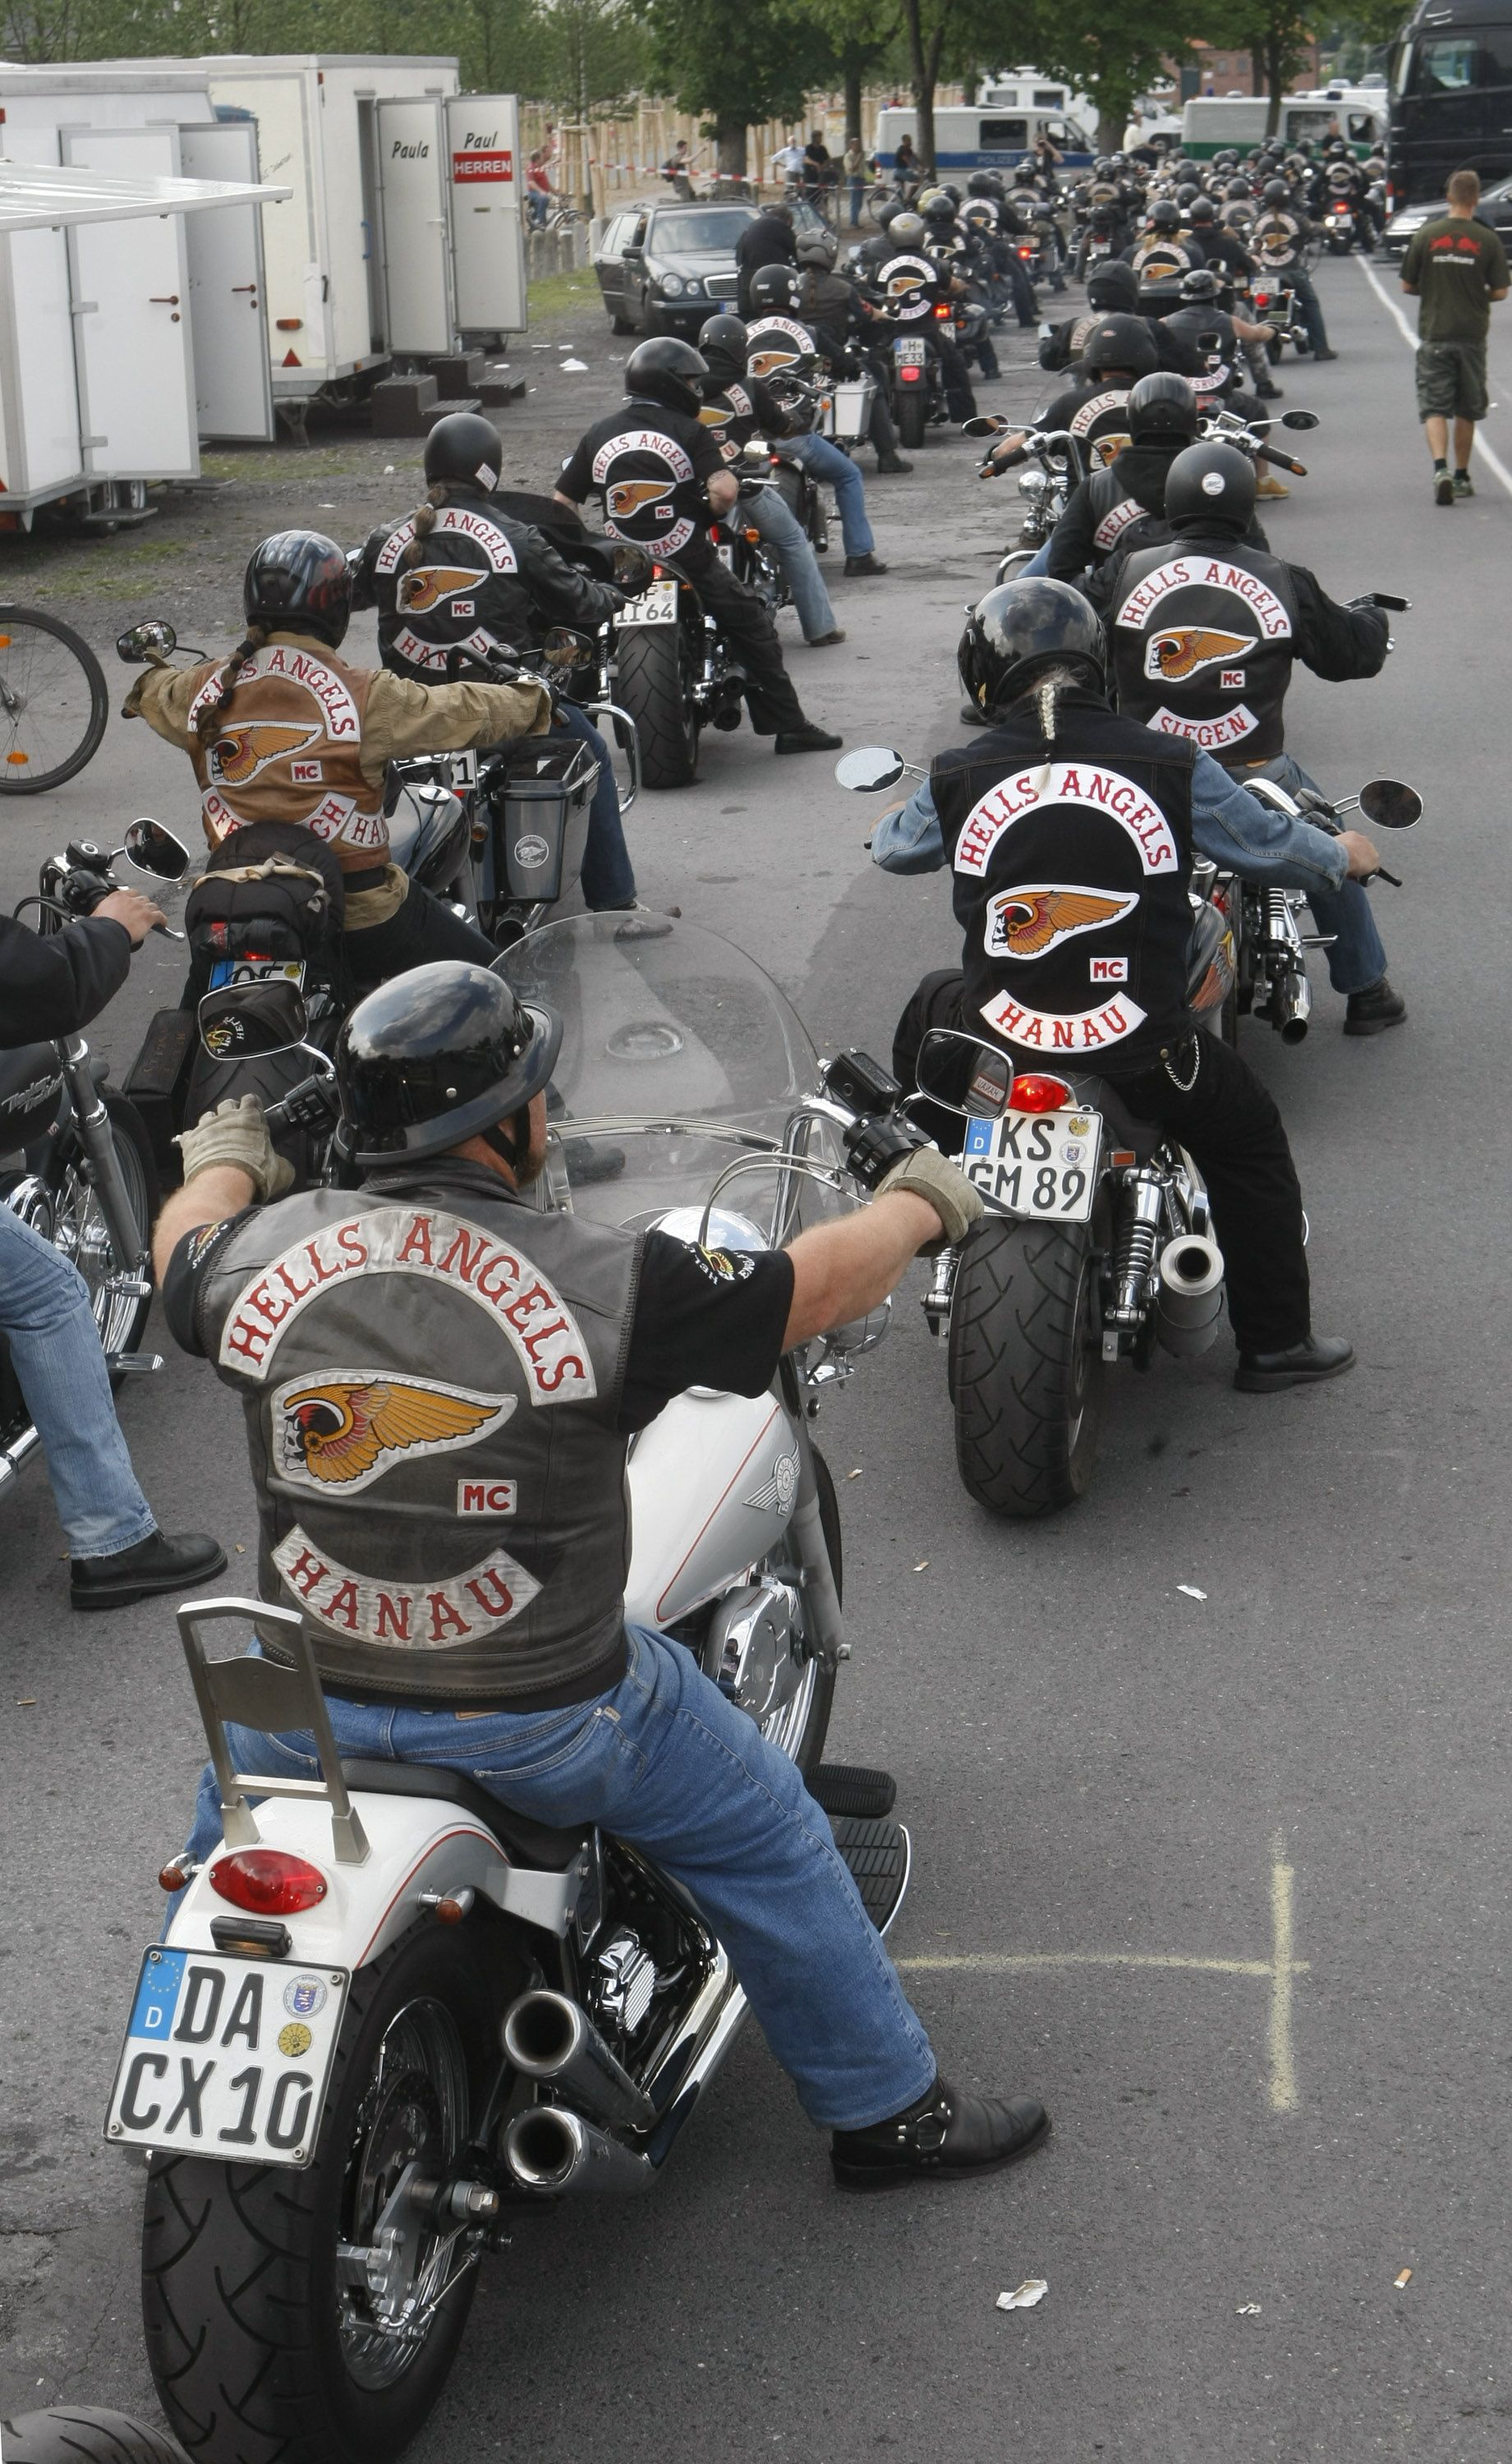 Hell's Angels Motorcycle Club | Bikers, a girls's dream